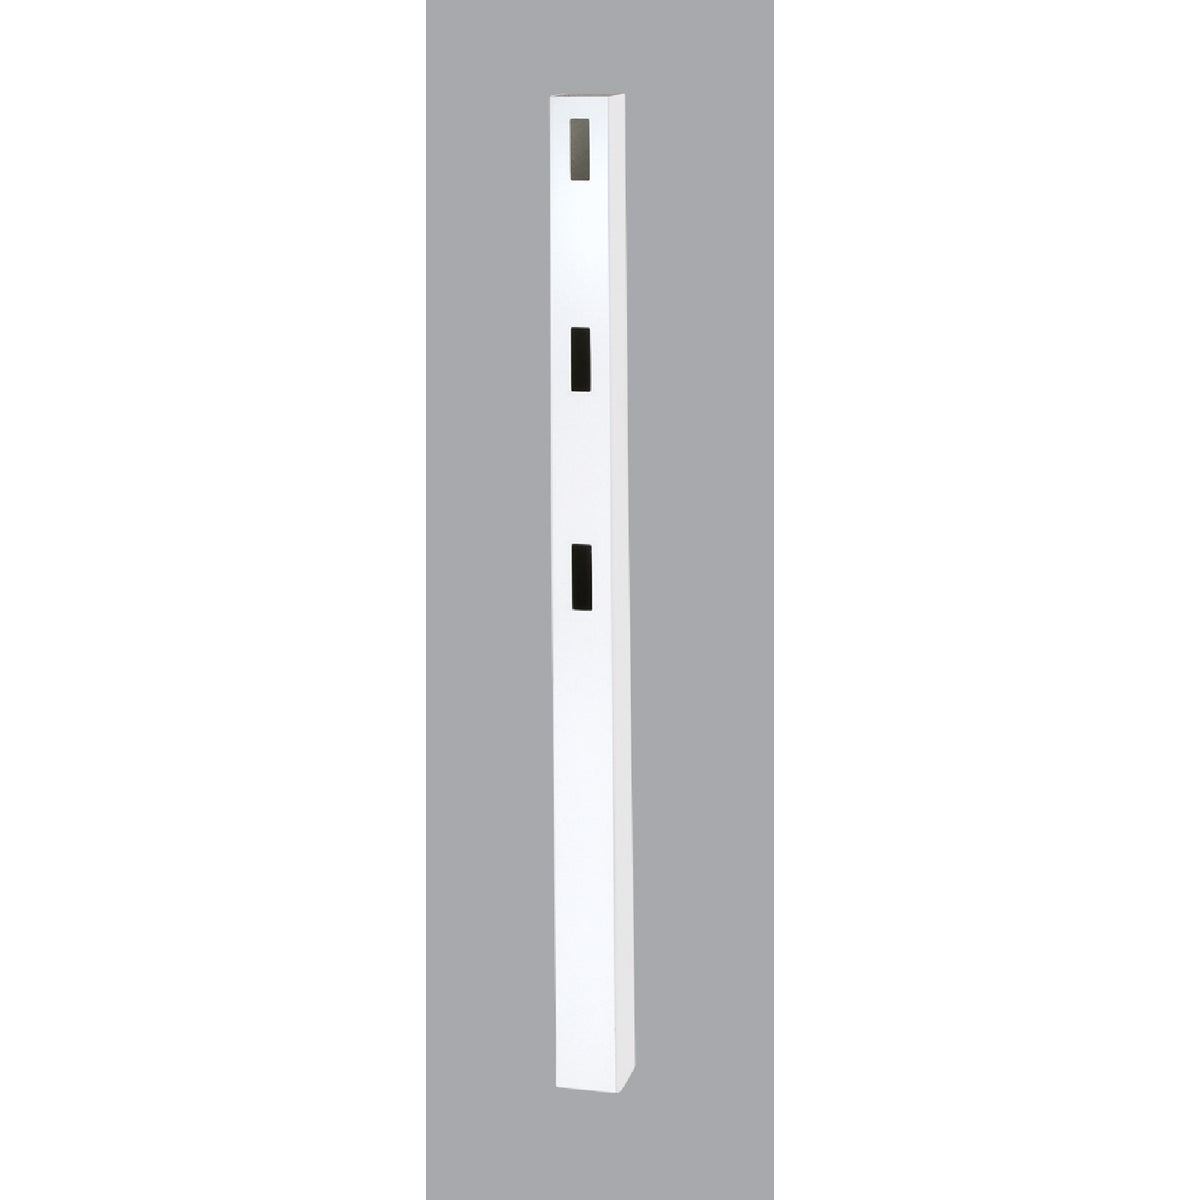 5X84 WHT 3-RAIL END POST - FW653E by Genova Bldg Products